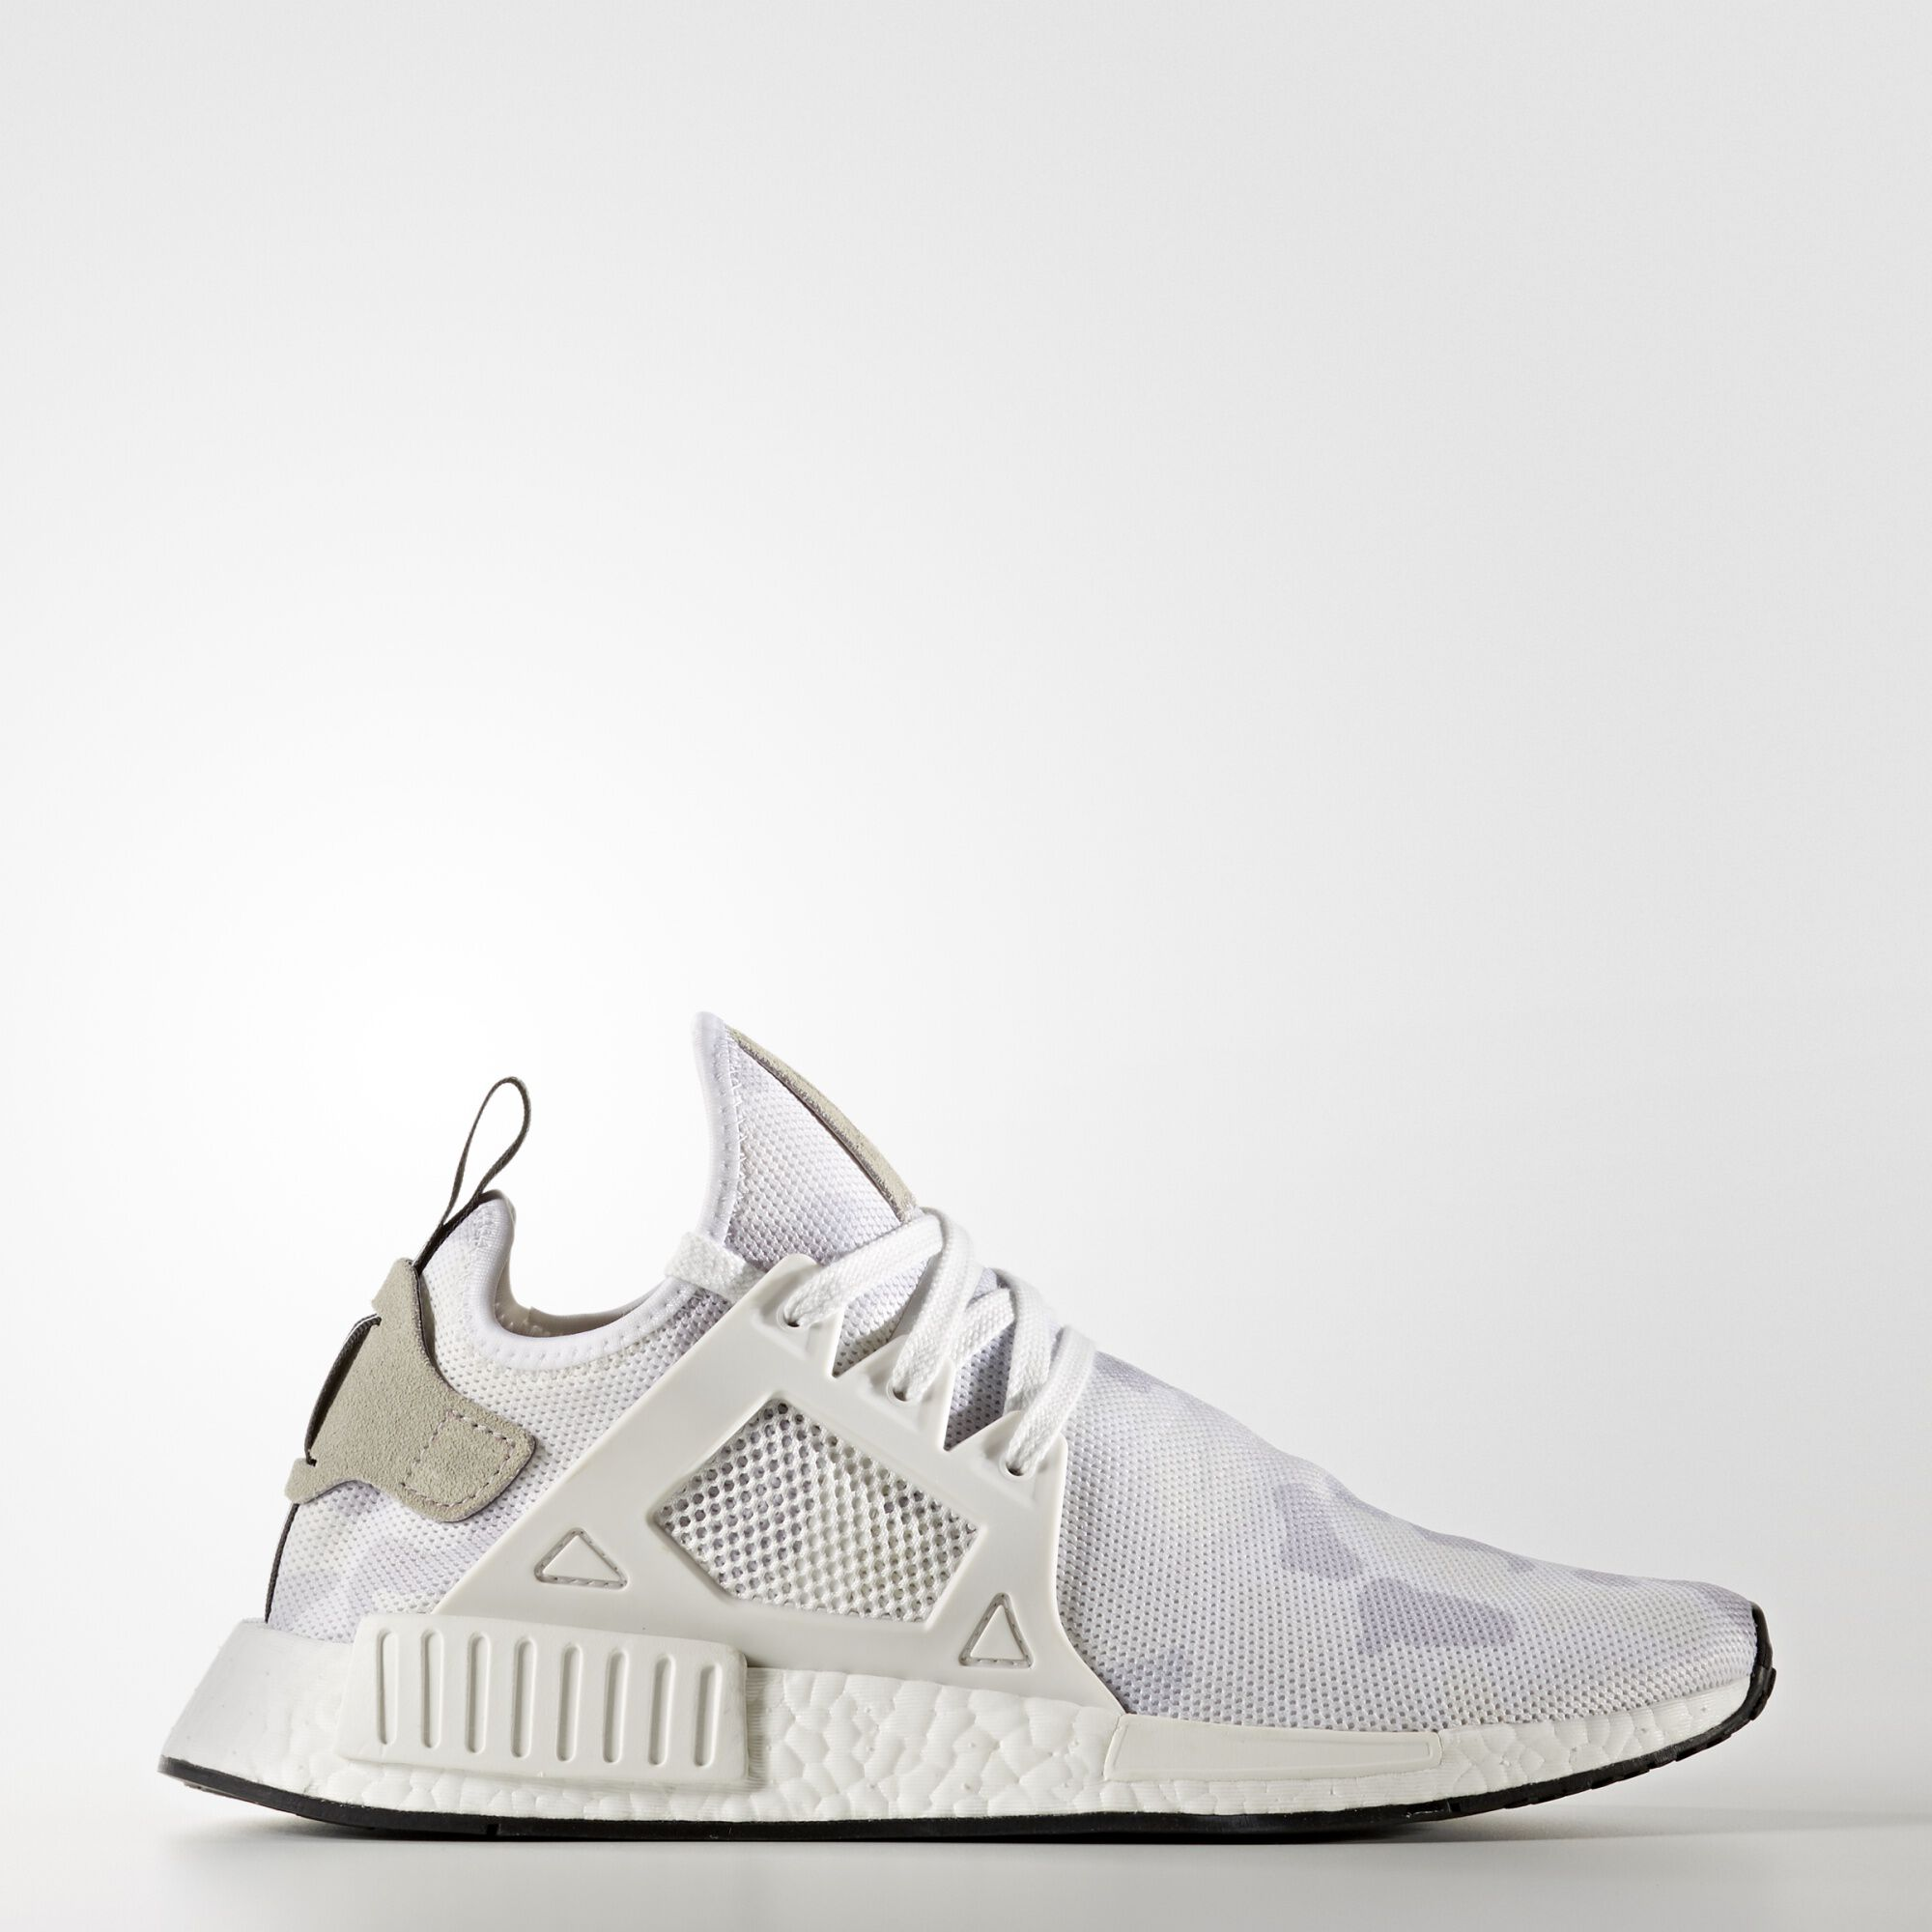 adidas Originals NMD Xr1 Trainers in Vintage White Bb3684 UK 9 EU